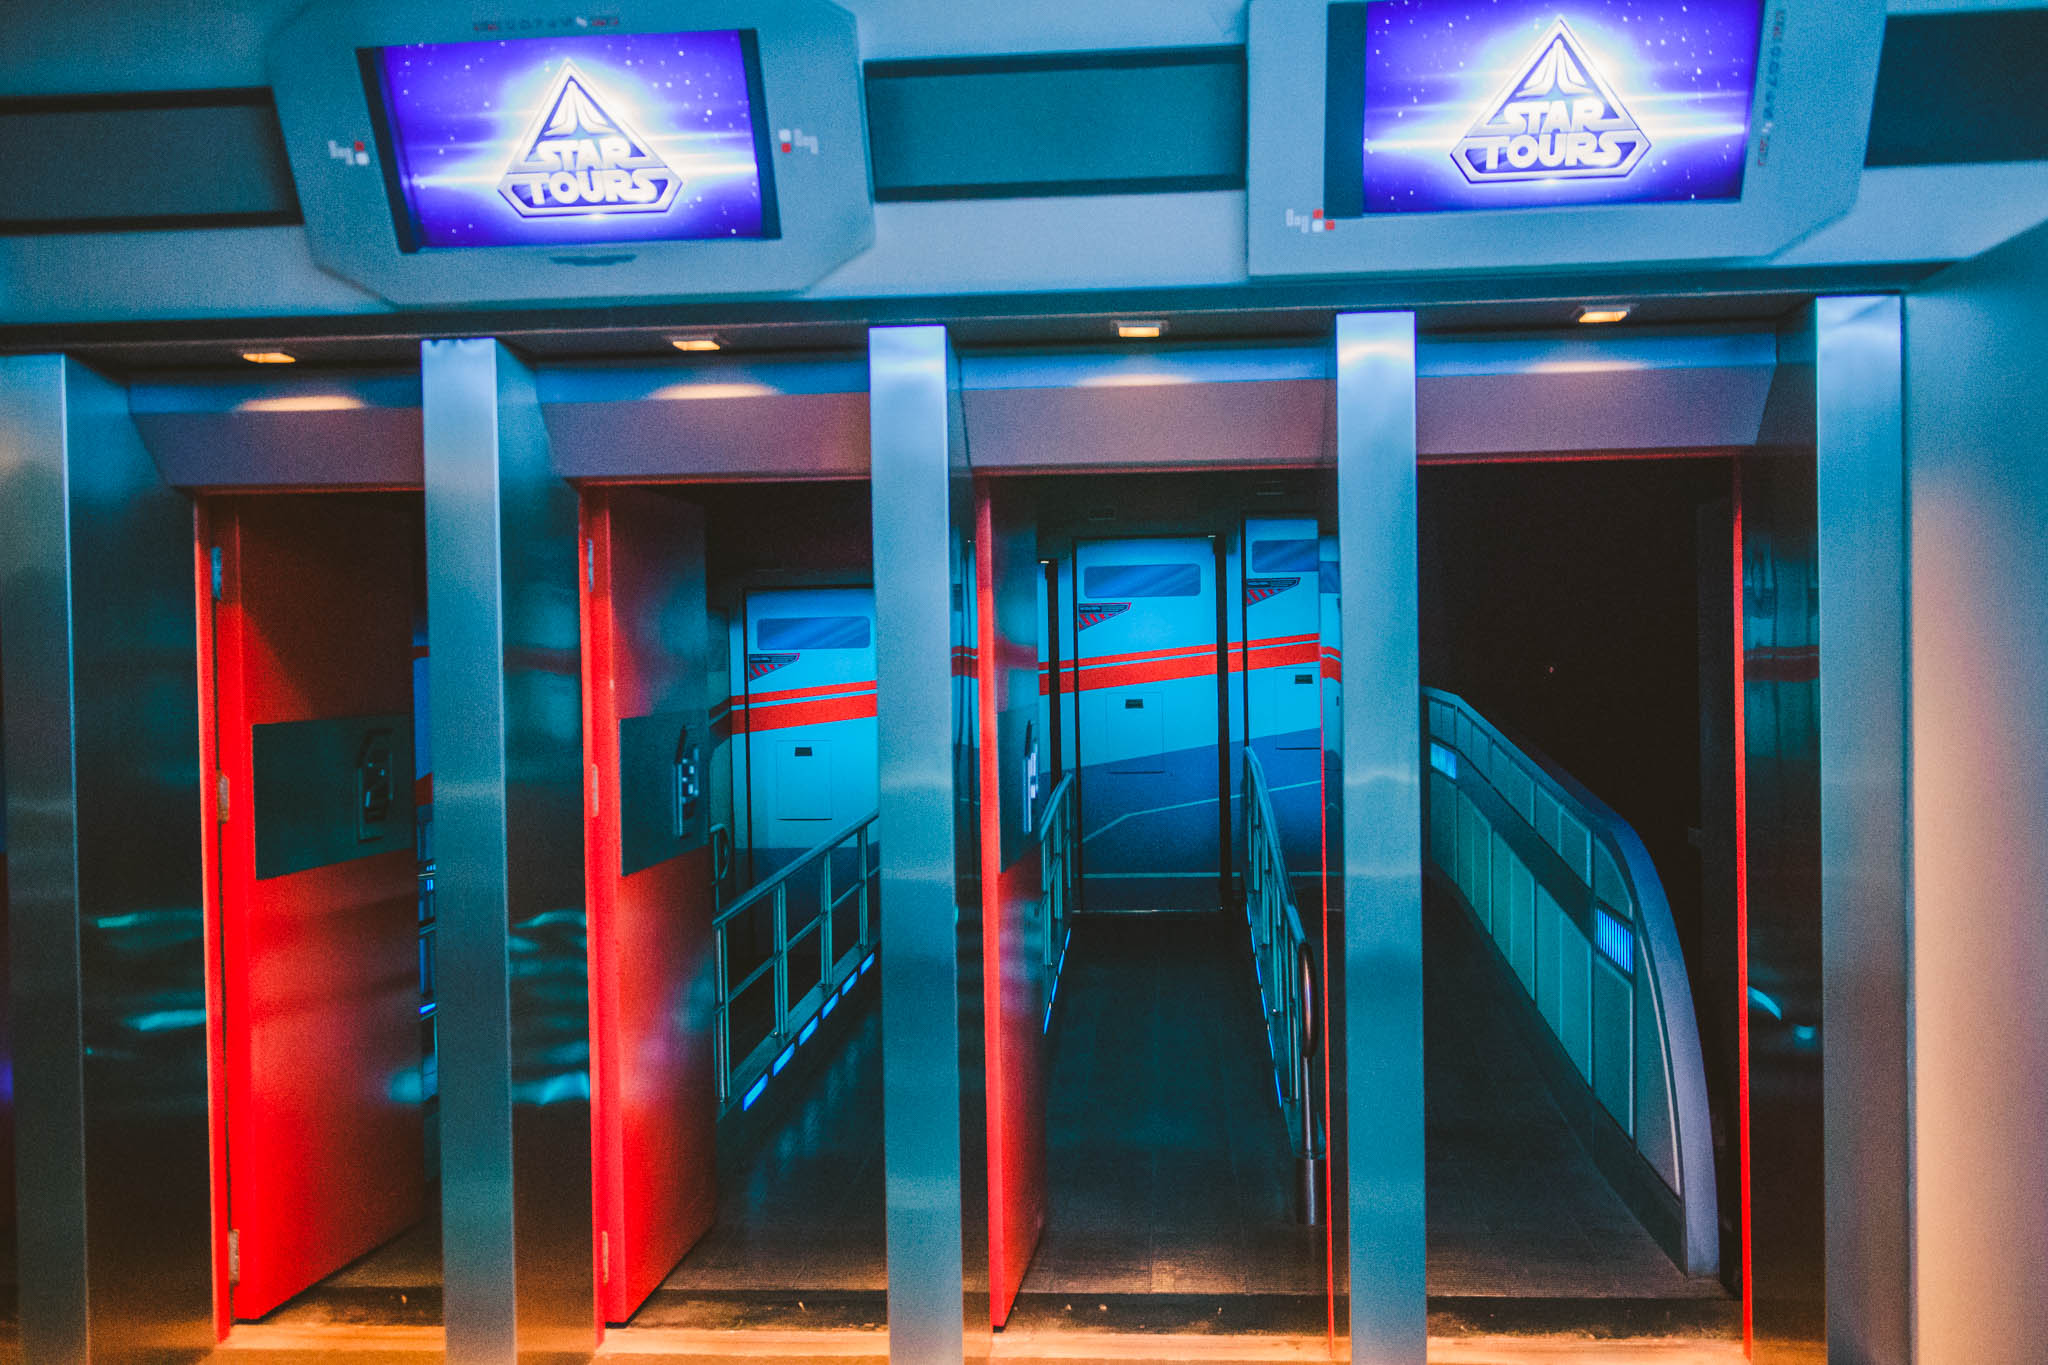 Exclusive: No more time travel in Star Tours!